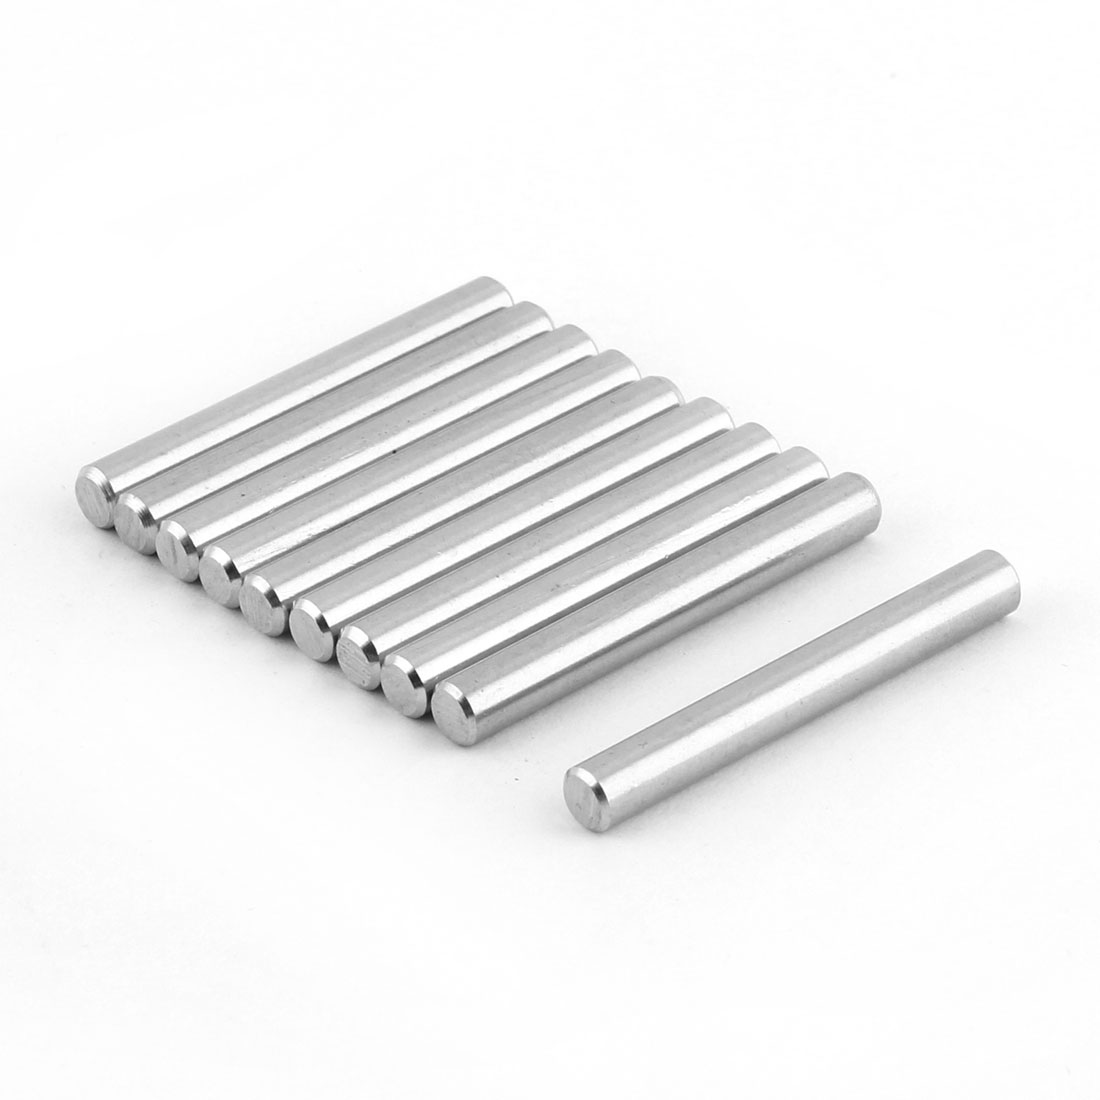 UXCELL Stainless Steel Parallel Round Dowel Pins Fastener Elements 5Mm X 40Mm 10 Pcs